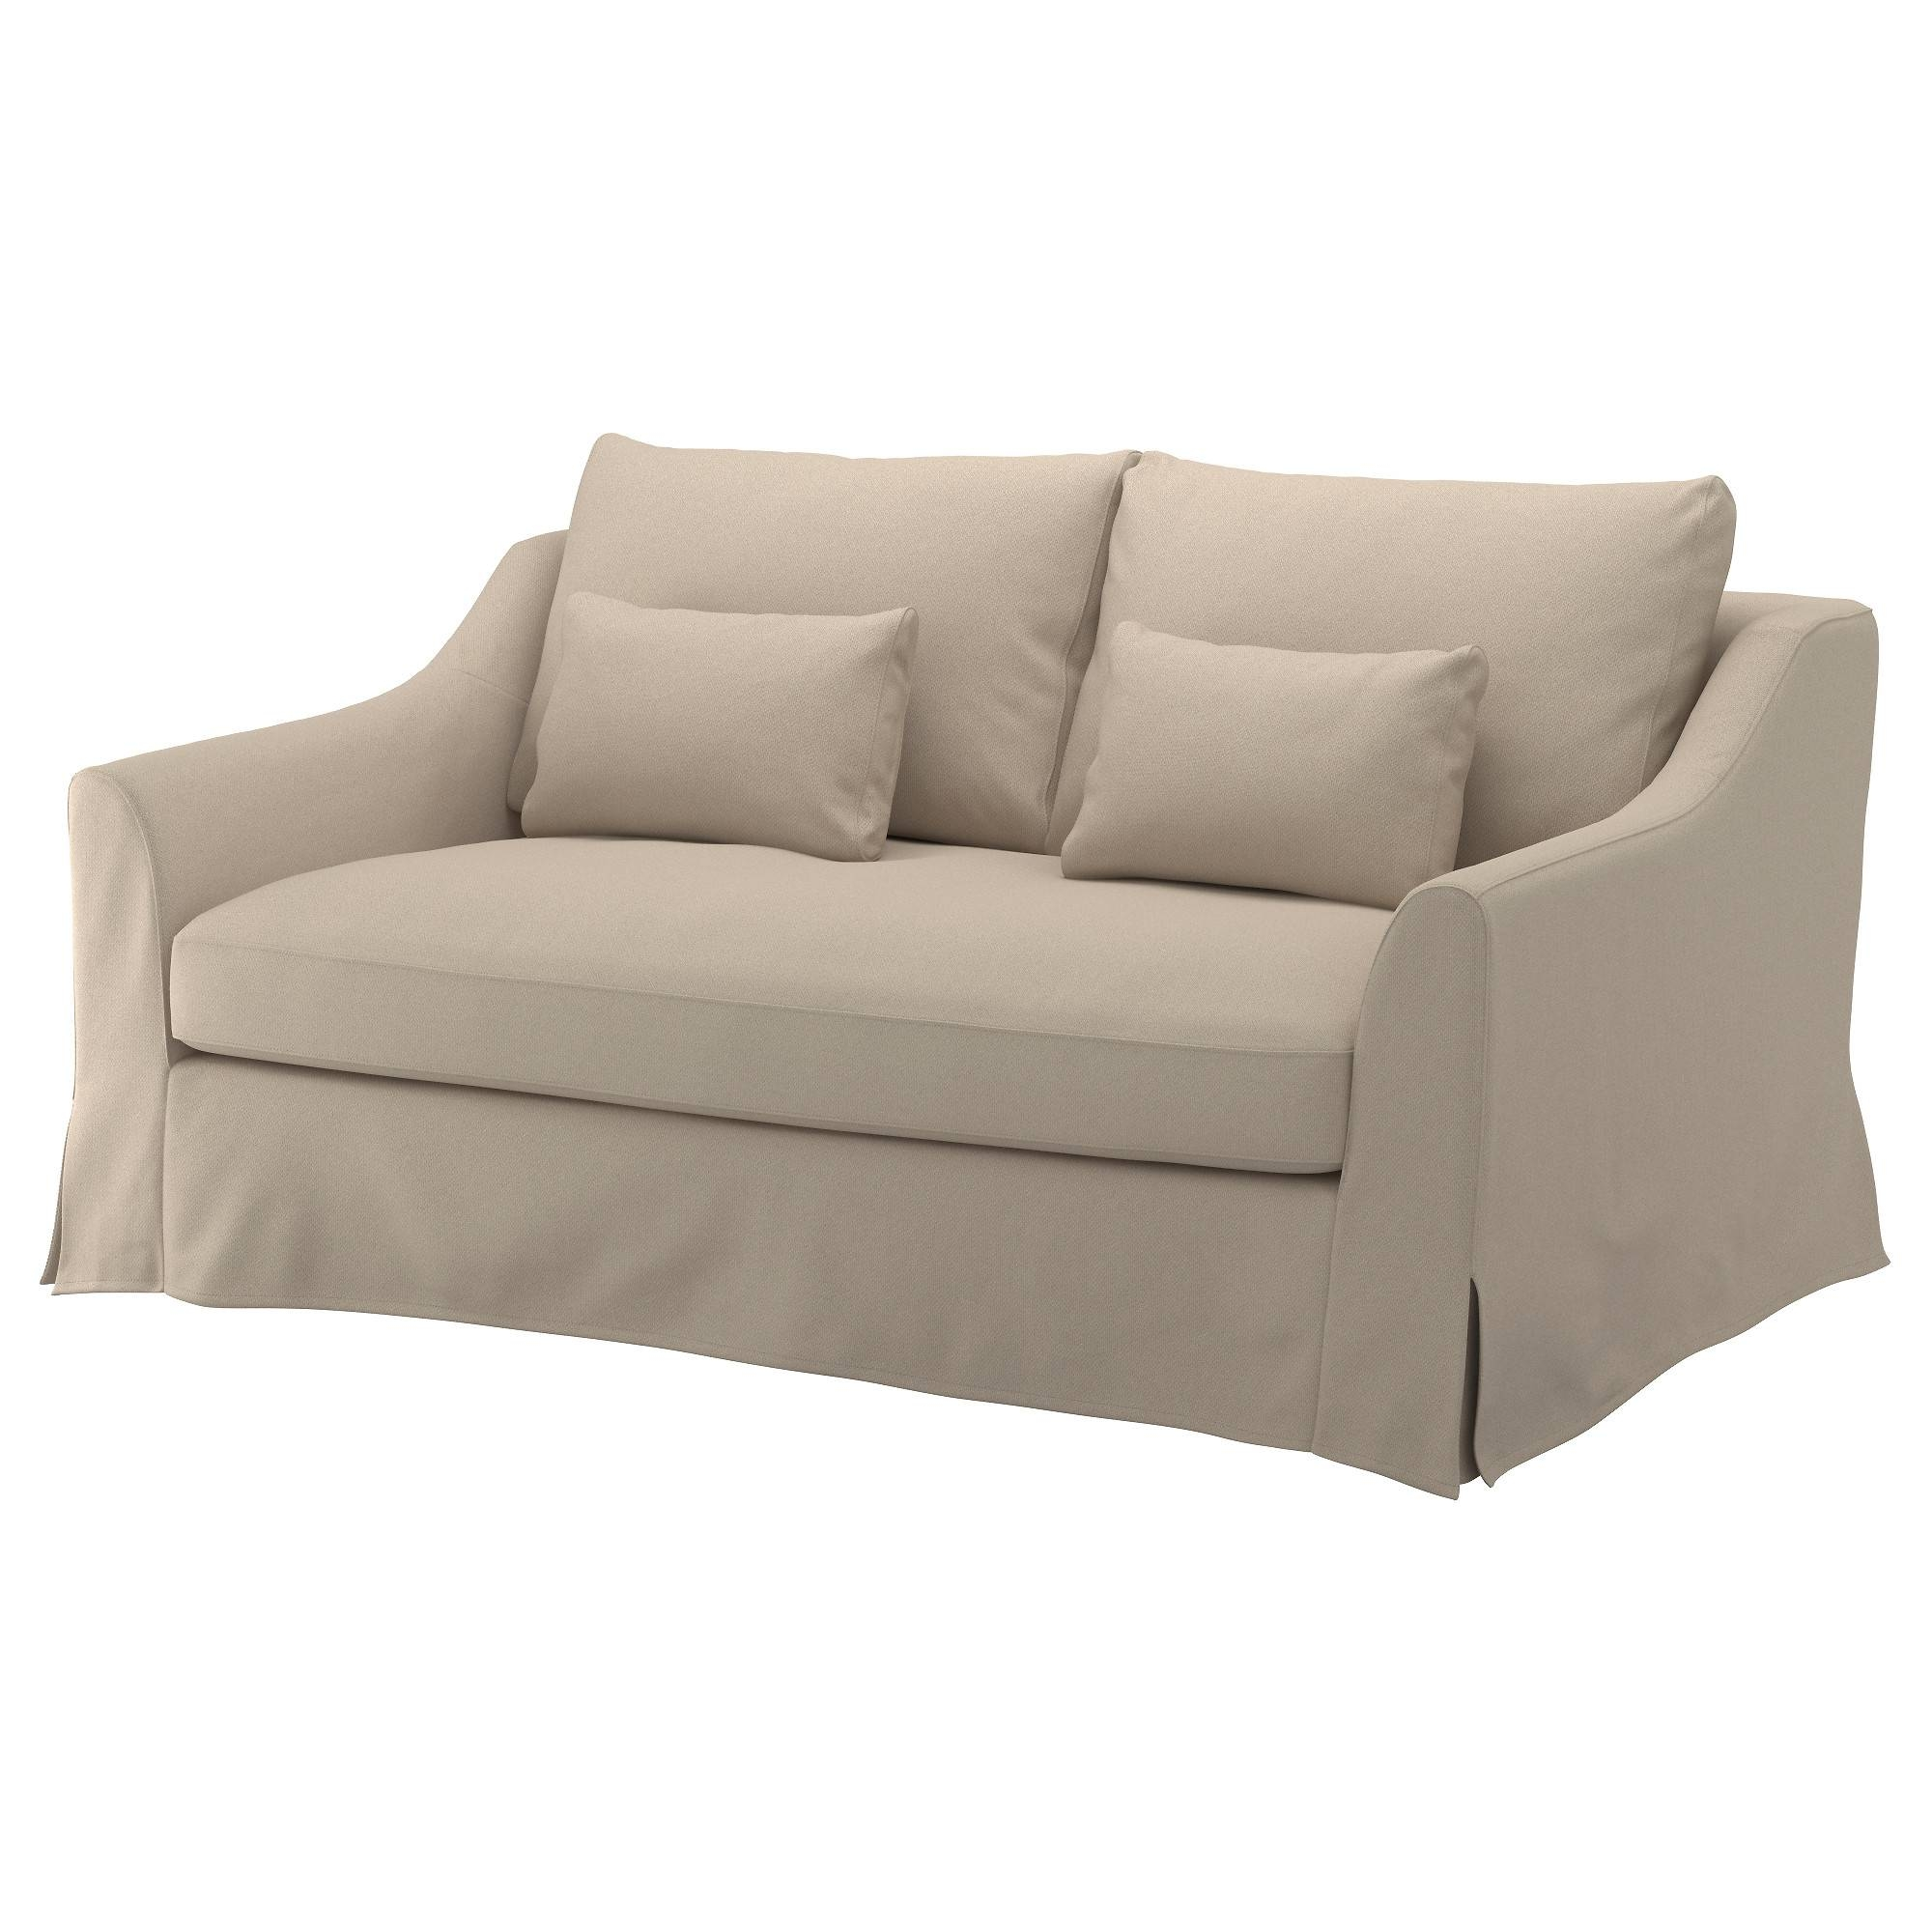 Fabric Loveseats - Ikea throughout Small Sofas Ikea (Image 9 of 30)